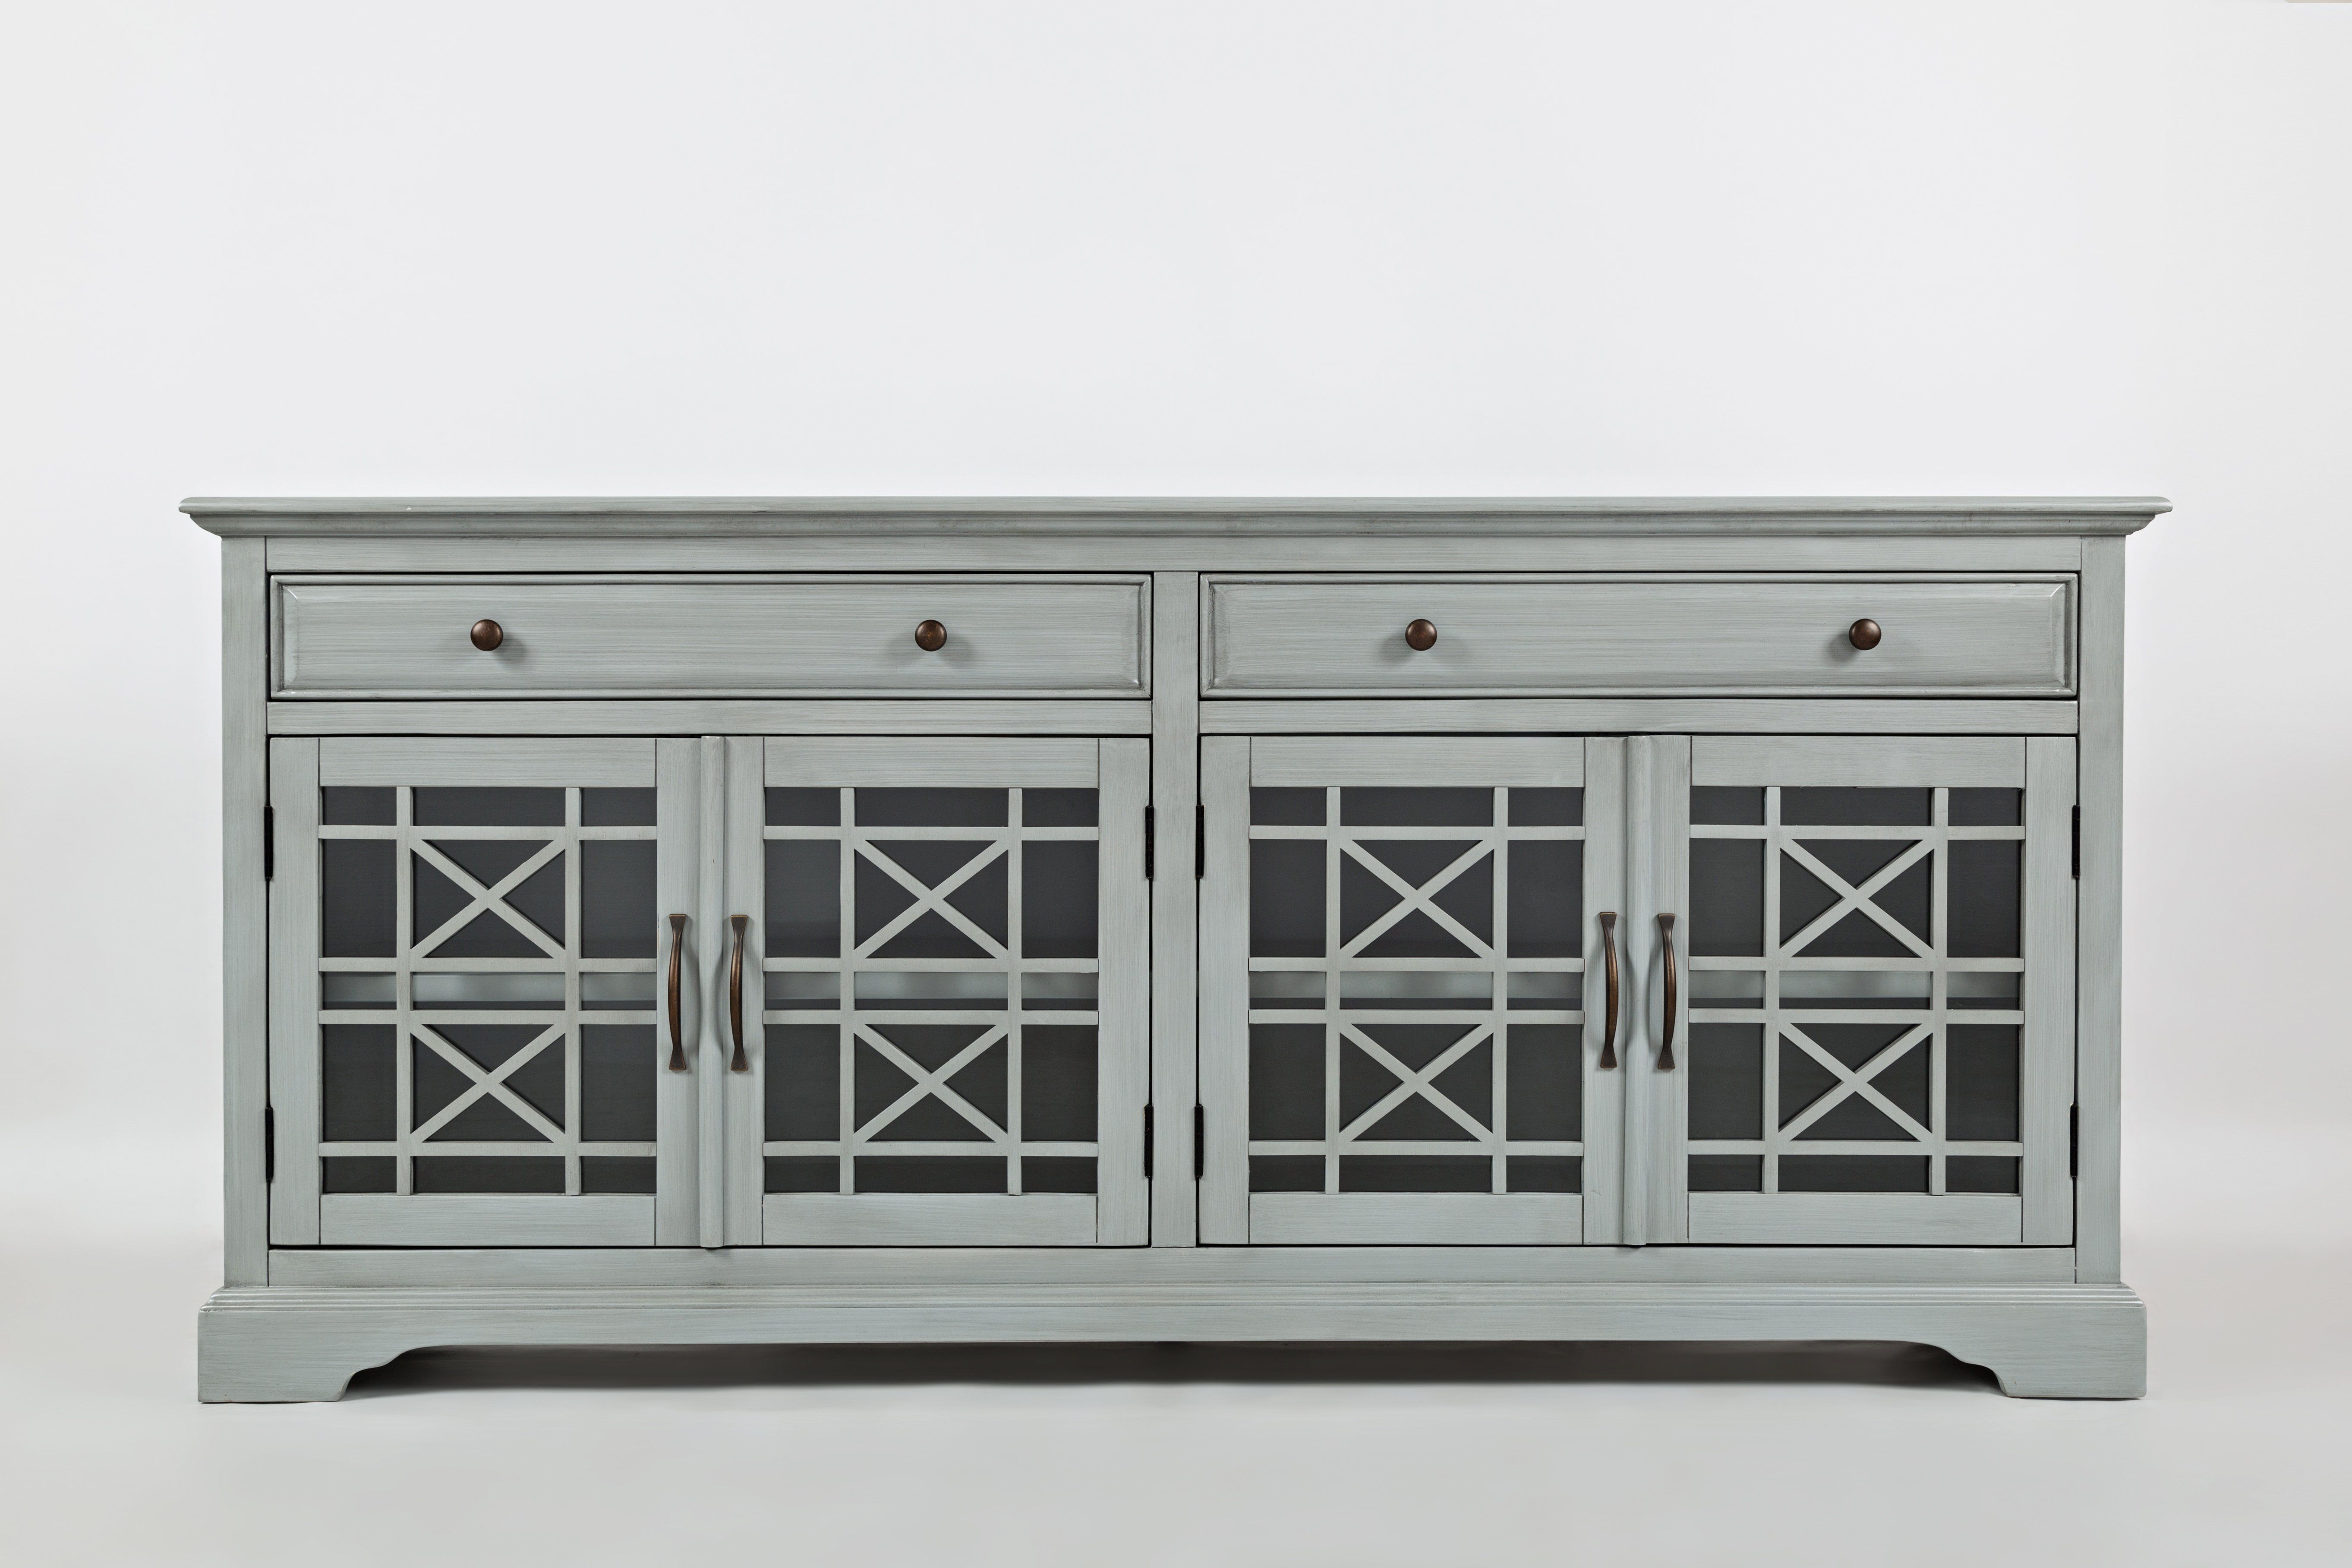 Craftsman Series 70 Inch Accent Cabinet With Fretwork Glass Front Earl Gray Bm184062 In 2021 Family Room Design Tv Stand Cool Tv Stands 70 inch media console